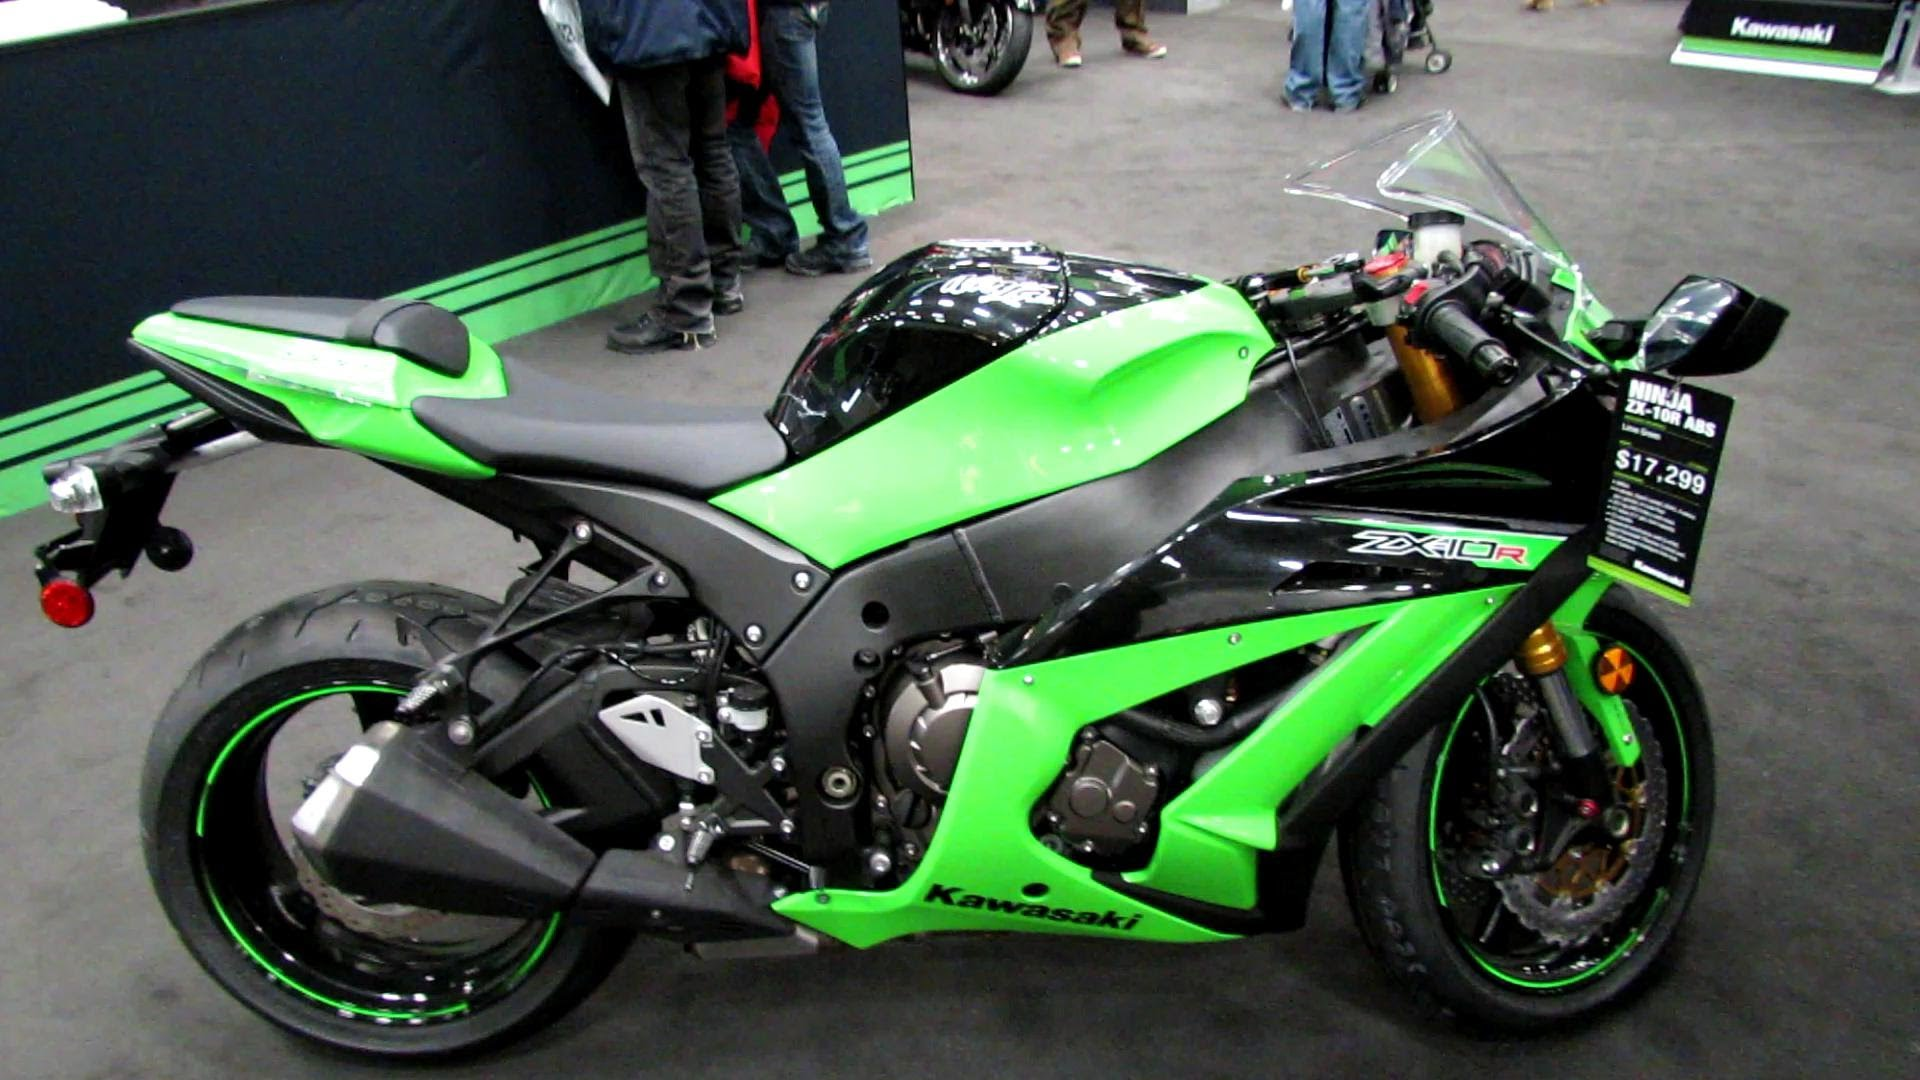 2013 Kawasaki Ninja Zx 10 R Pics Specs And Information